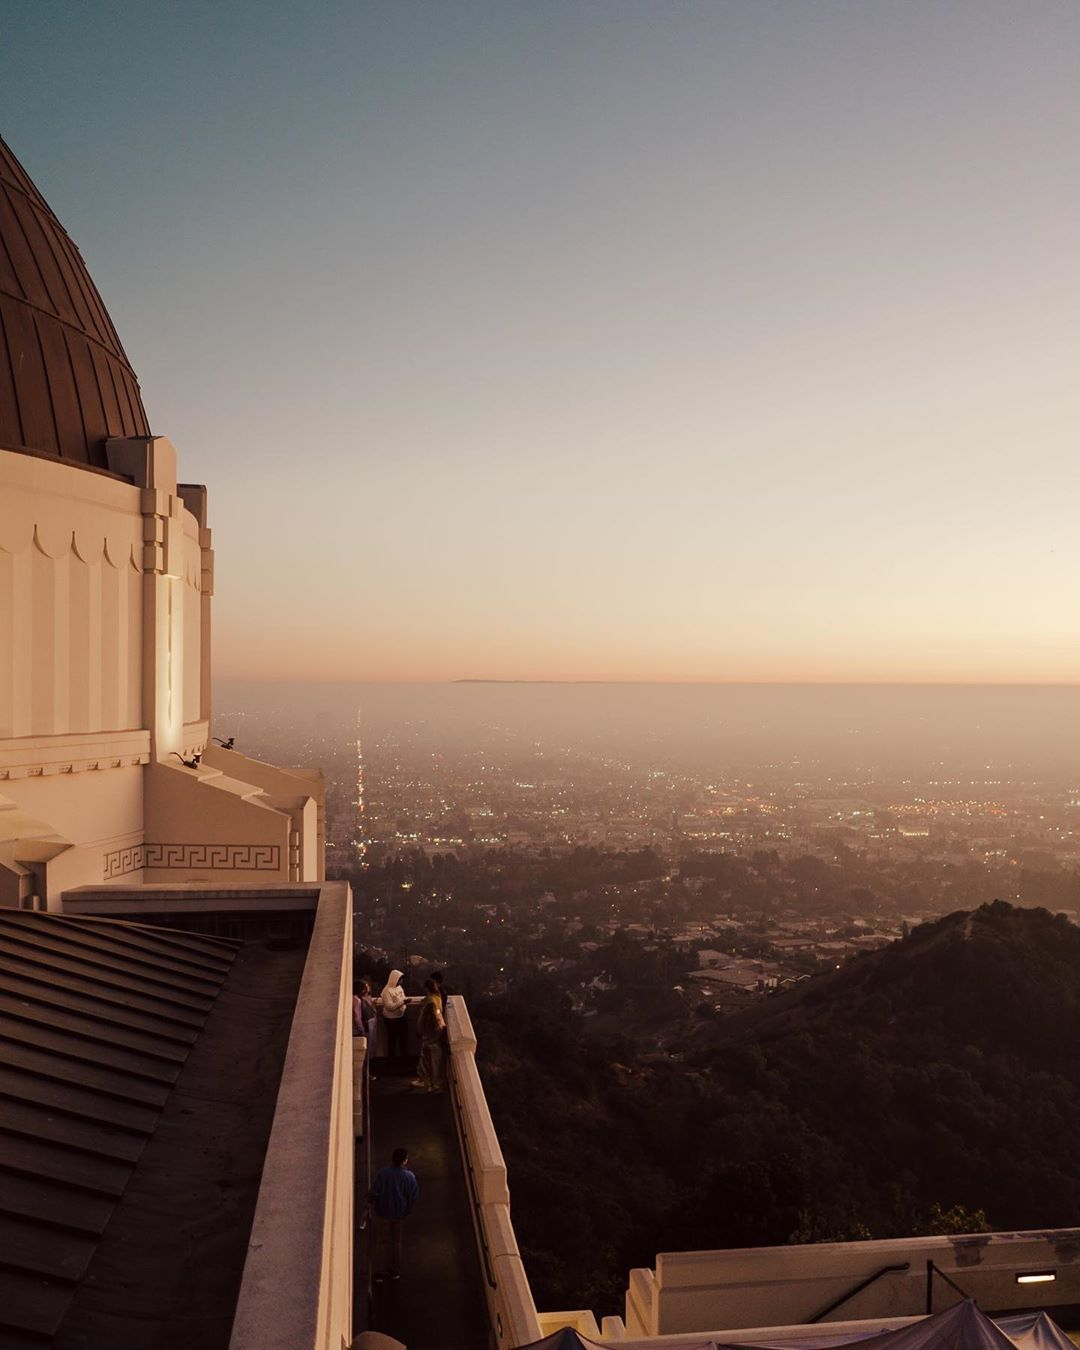 "Daniel Böswald's Instagram profile post: ""View over LA from Griffith Observatory 🔭🌆 #losangeles #lacity #downtownla #california #cali #californiadreaming #calilife #calilifestyle…"""